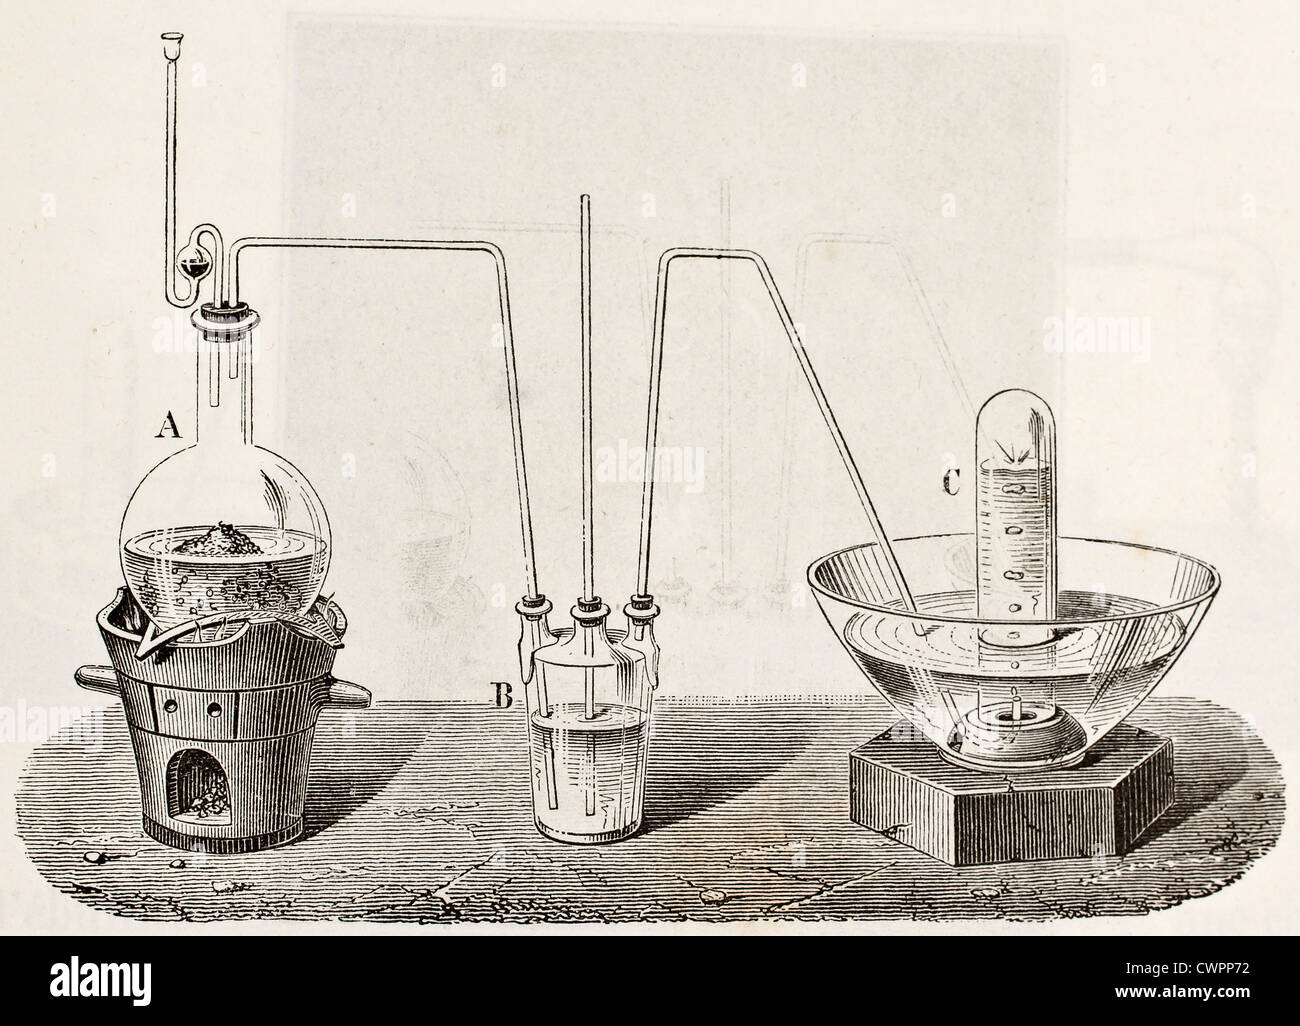 Laboratory apparatus for oxygen production - Stock Image